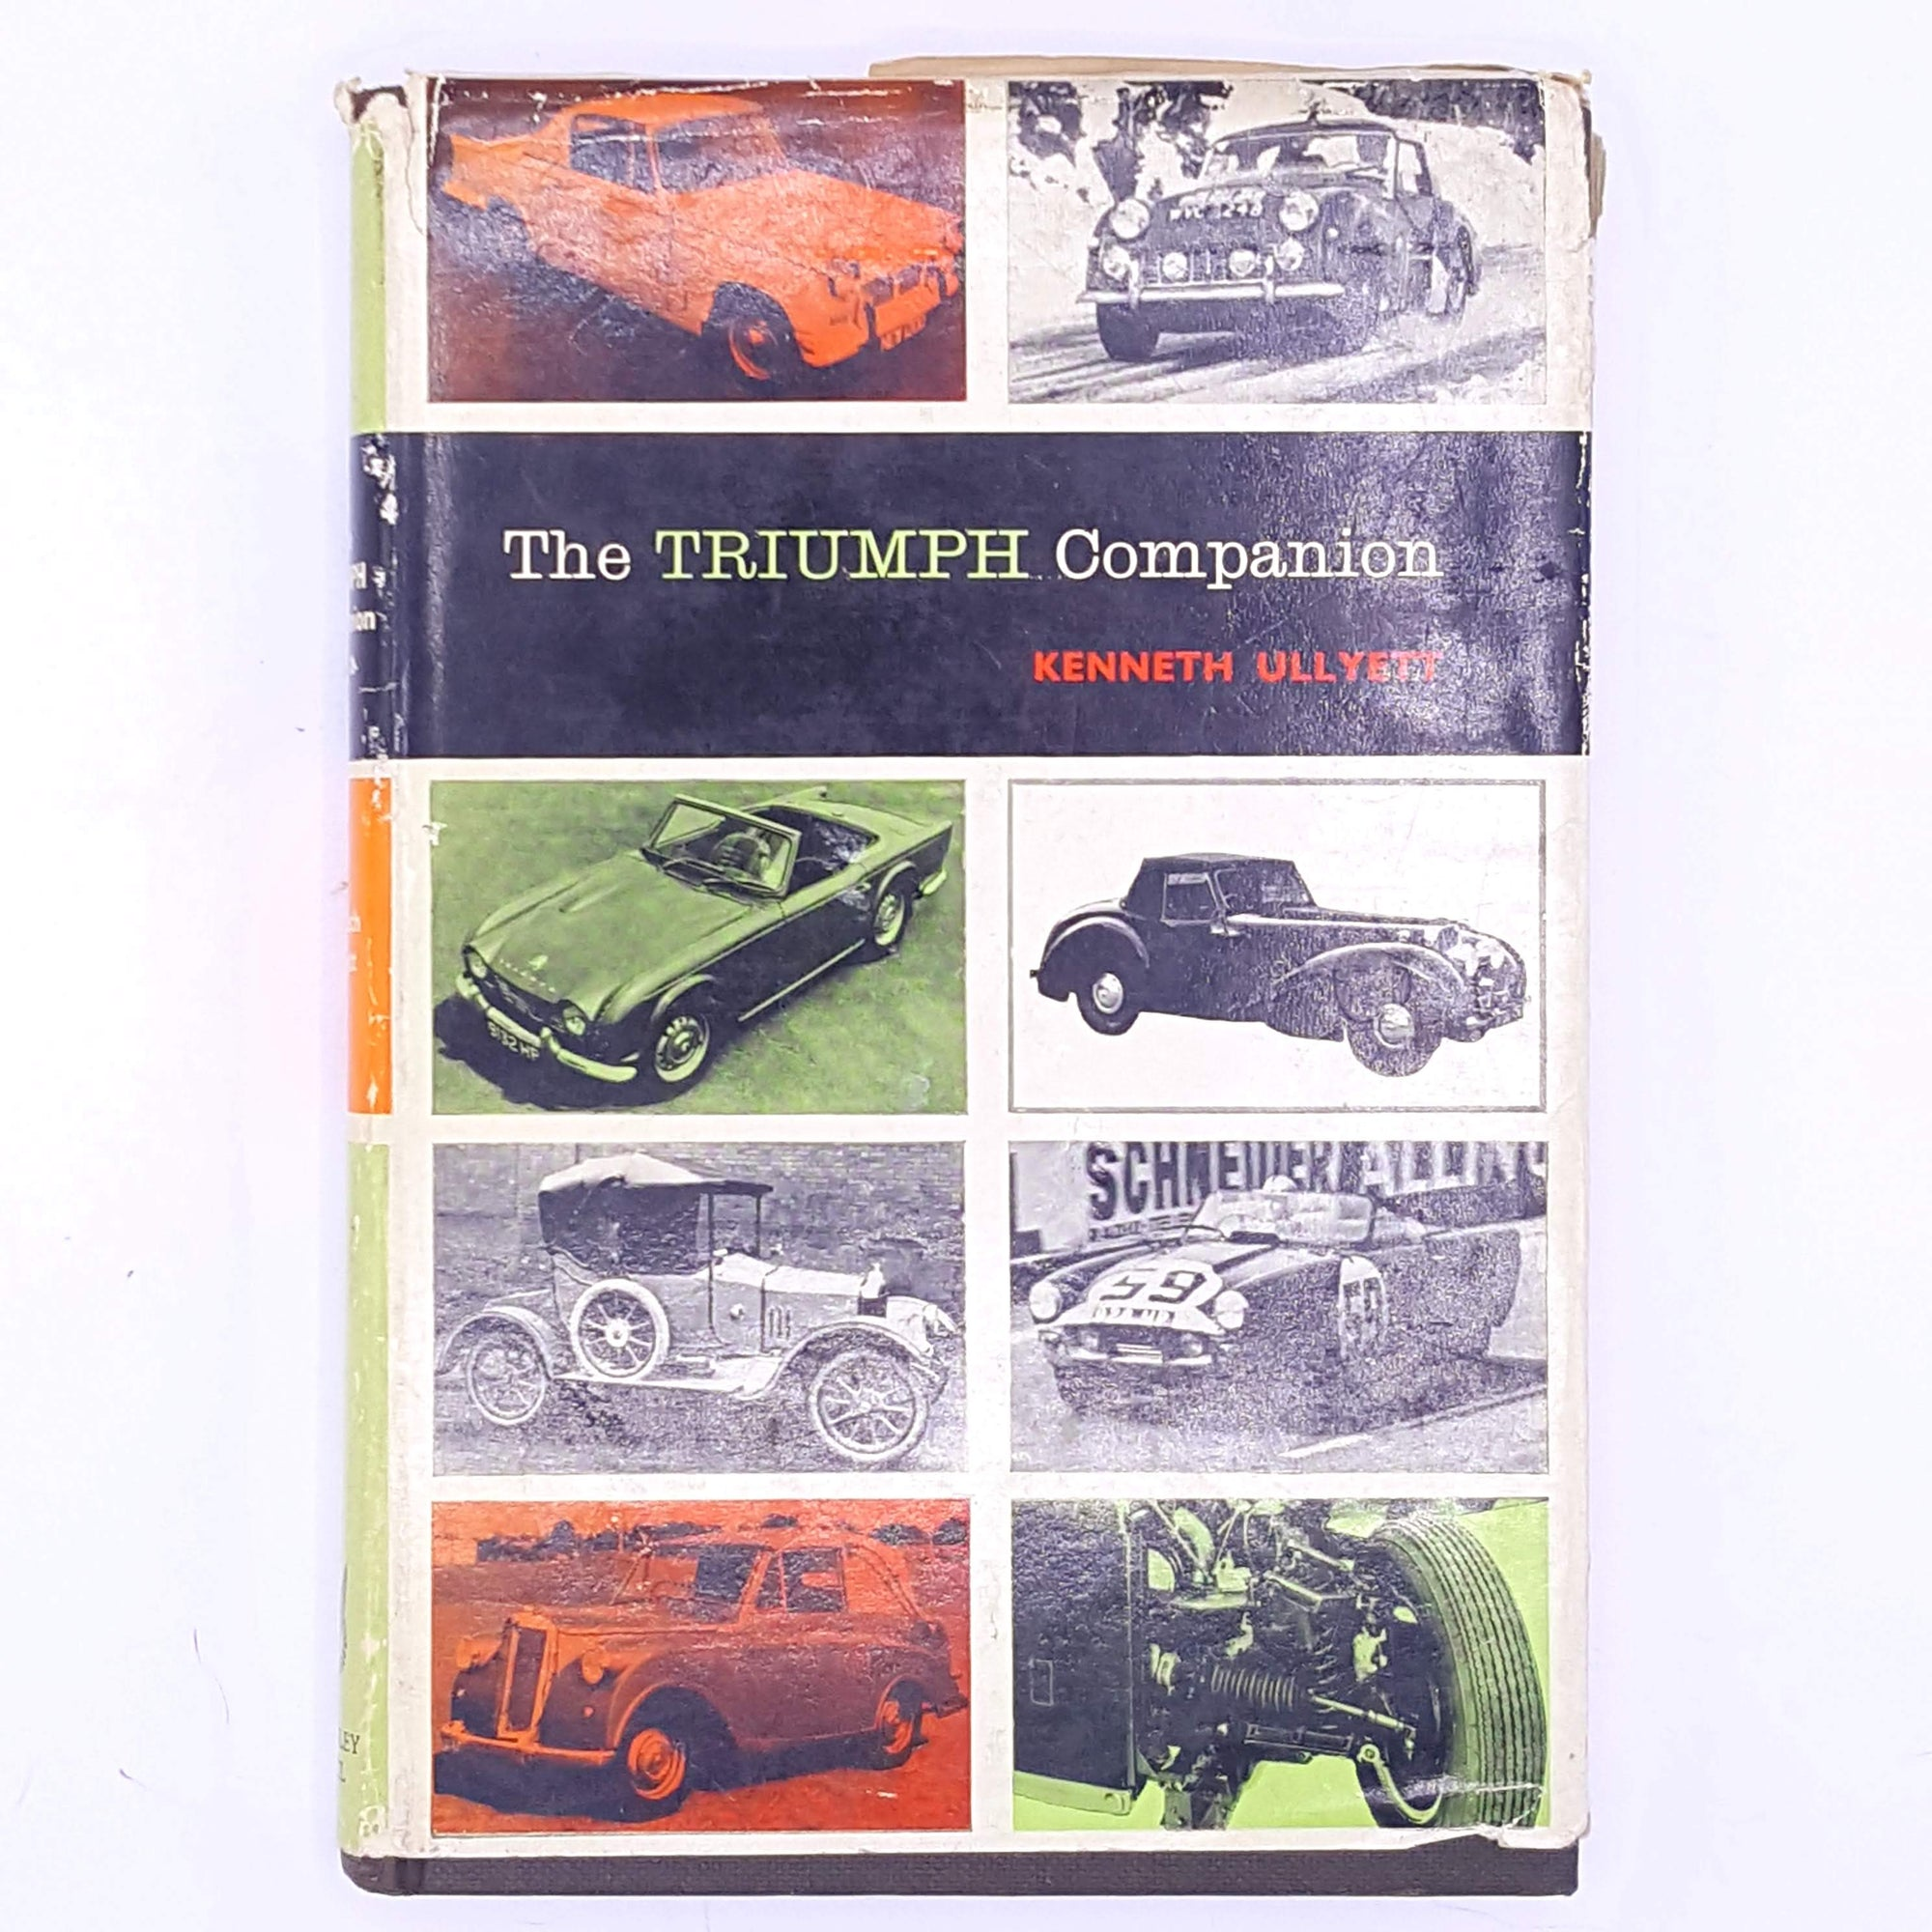 classic-cars-thrift-antique-triumph-for-him-cars-for-sports-fans-books-christmas-gifts-classic-old-the-triumph-companion- country-house-library-sport-decorative-patterned-vintage-vintage-cars-